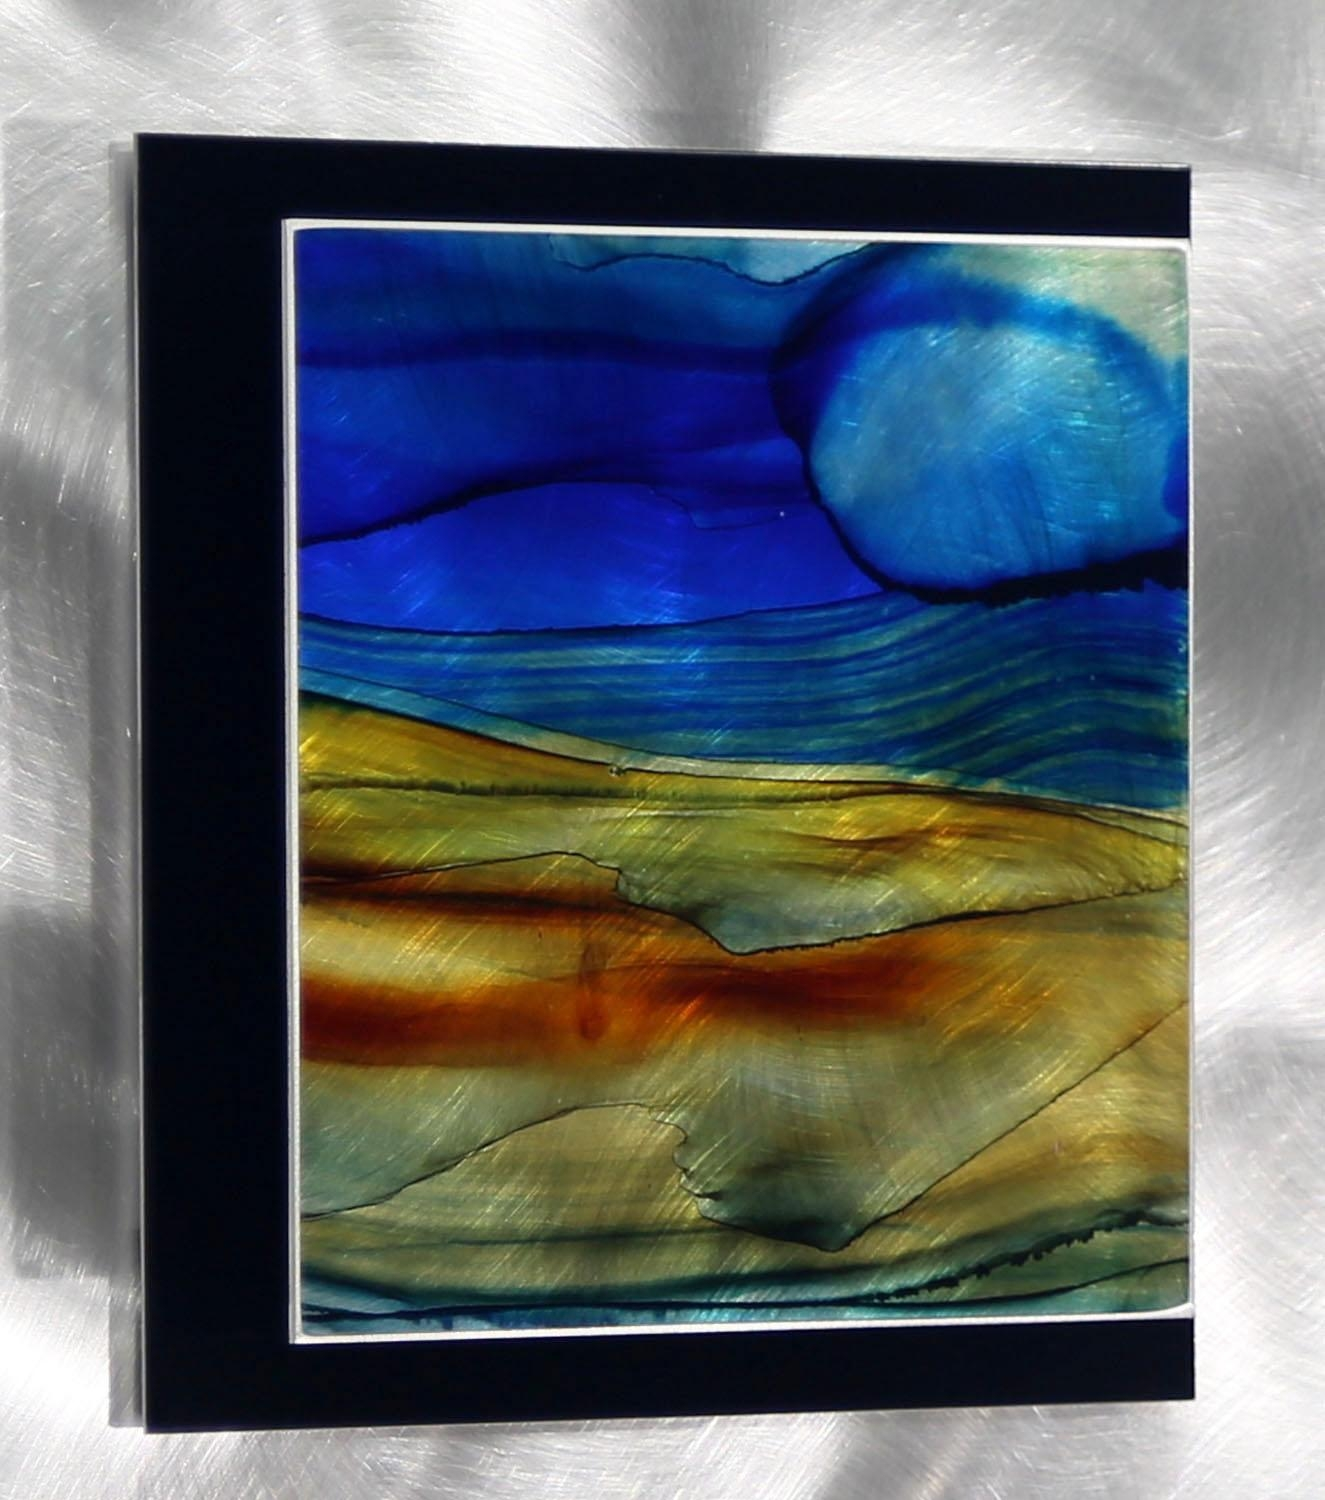 Oj 534Jon Allen – Modern One Of A Kind Blue, Green & Brown Intended For Blue And Brown Wall Art (View 9 of 20)